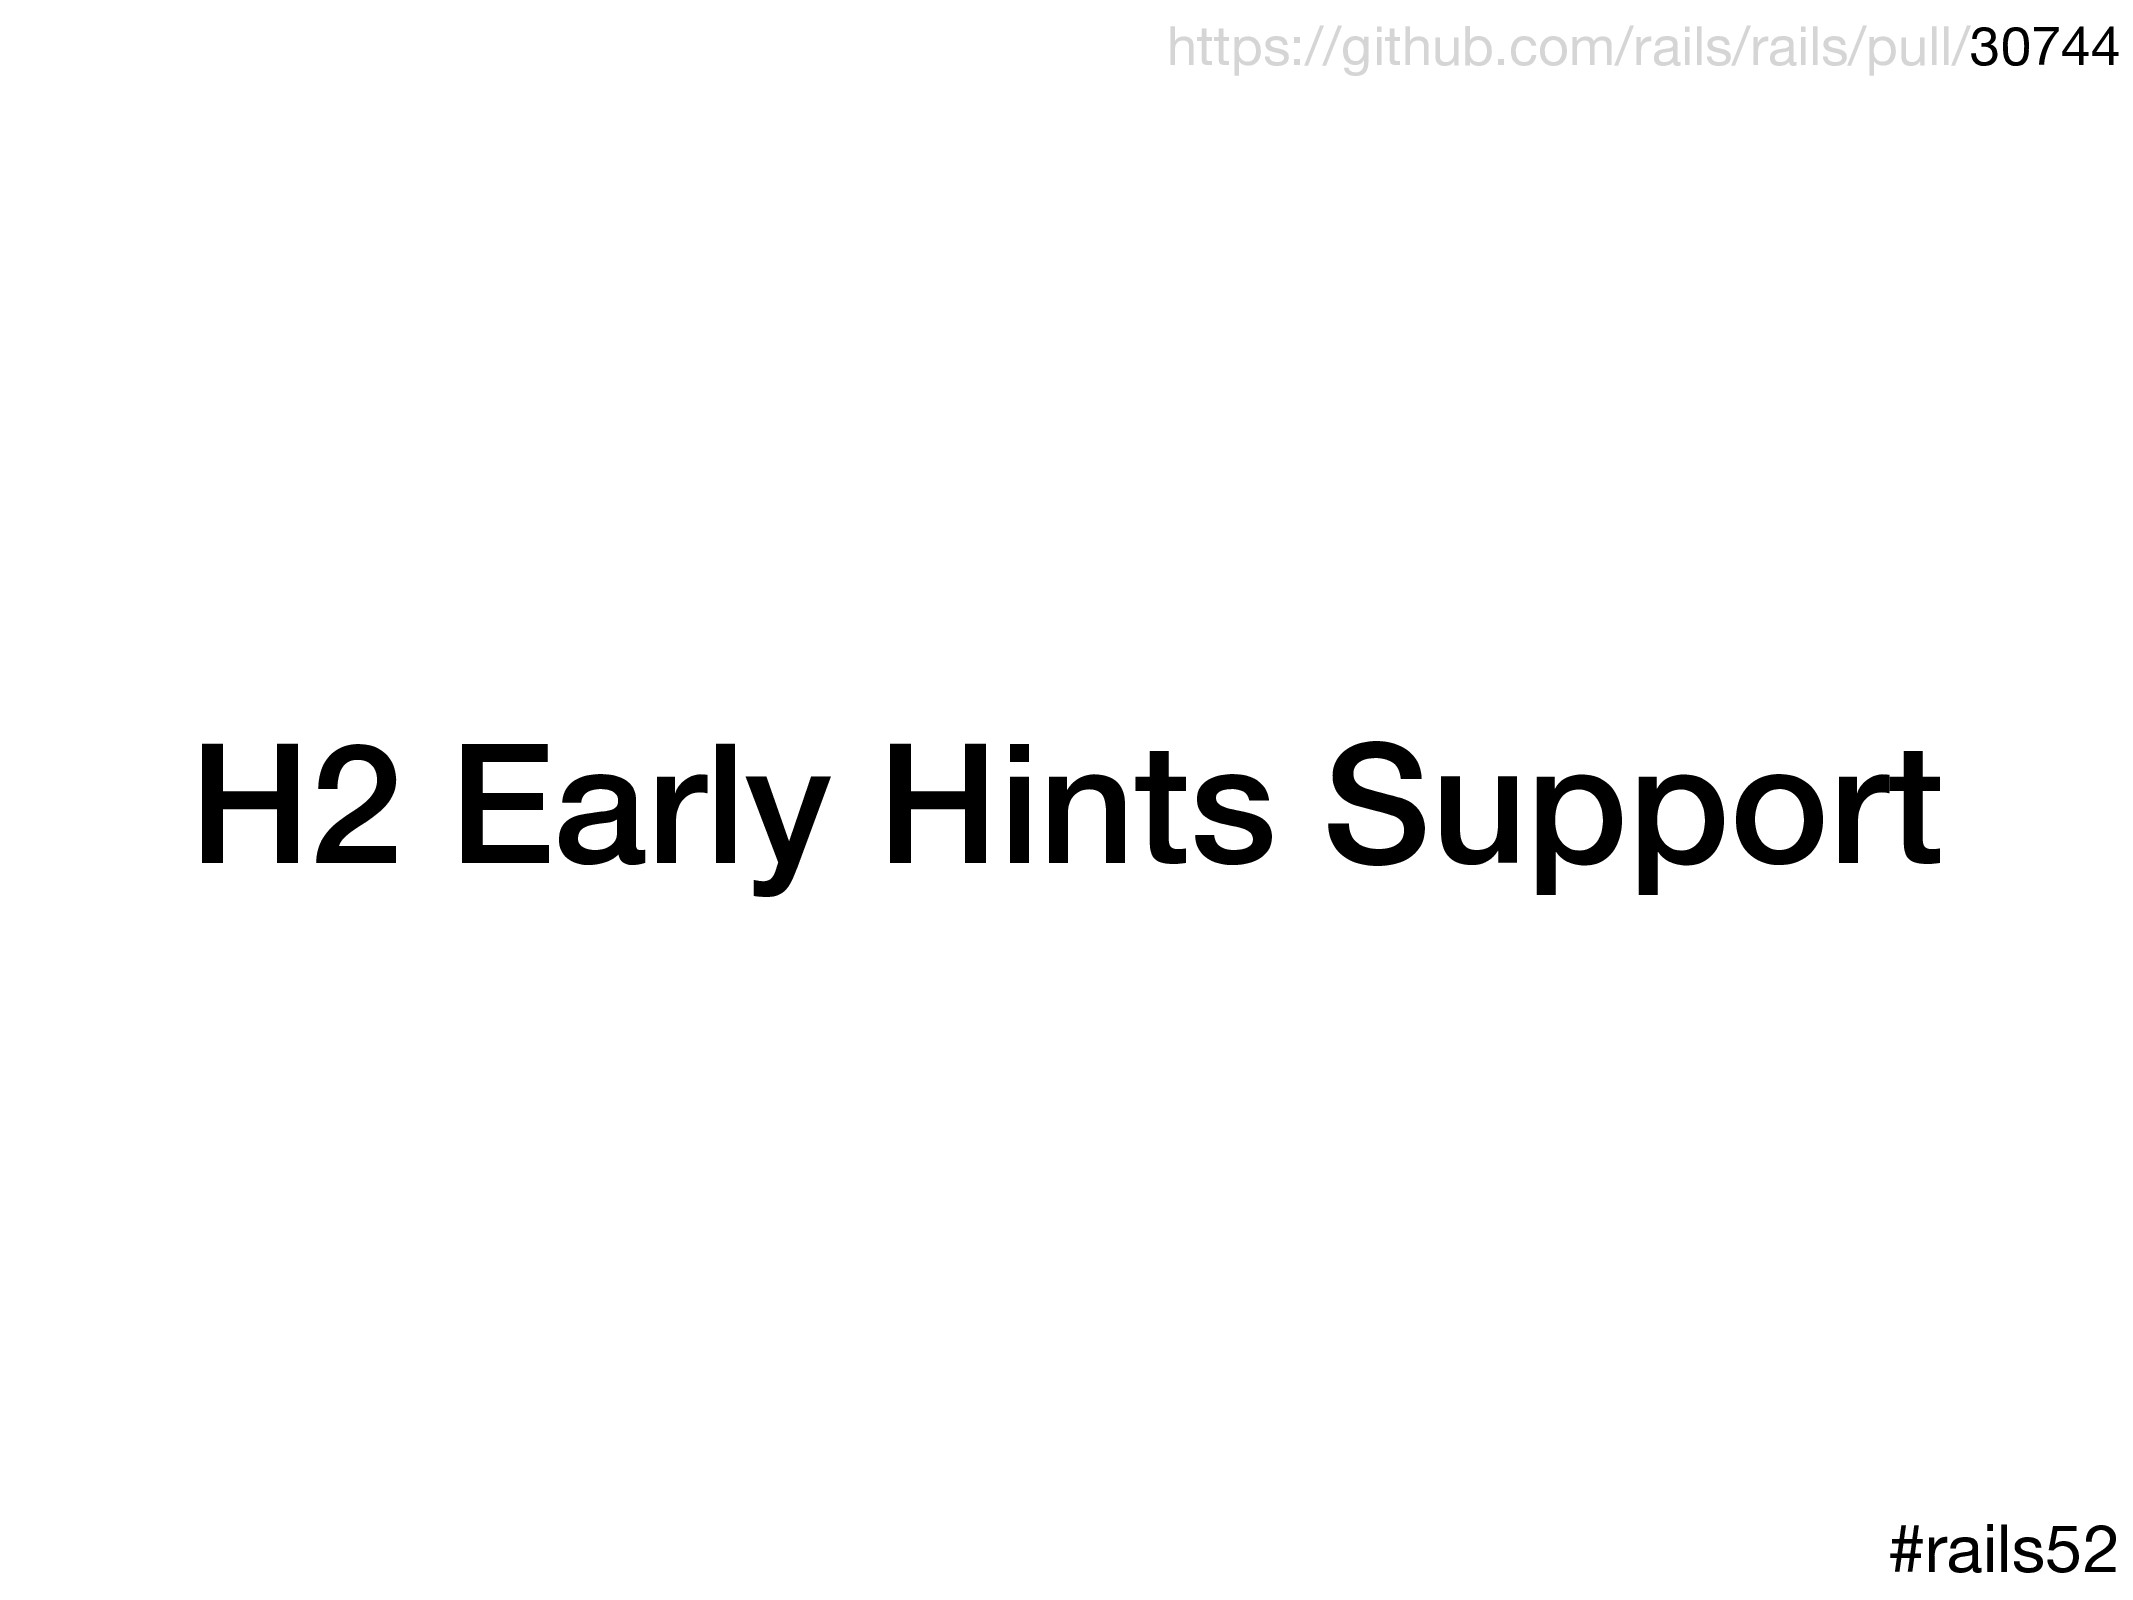 H2 Early Hints Support #rails52 https://github....